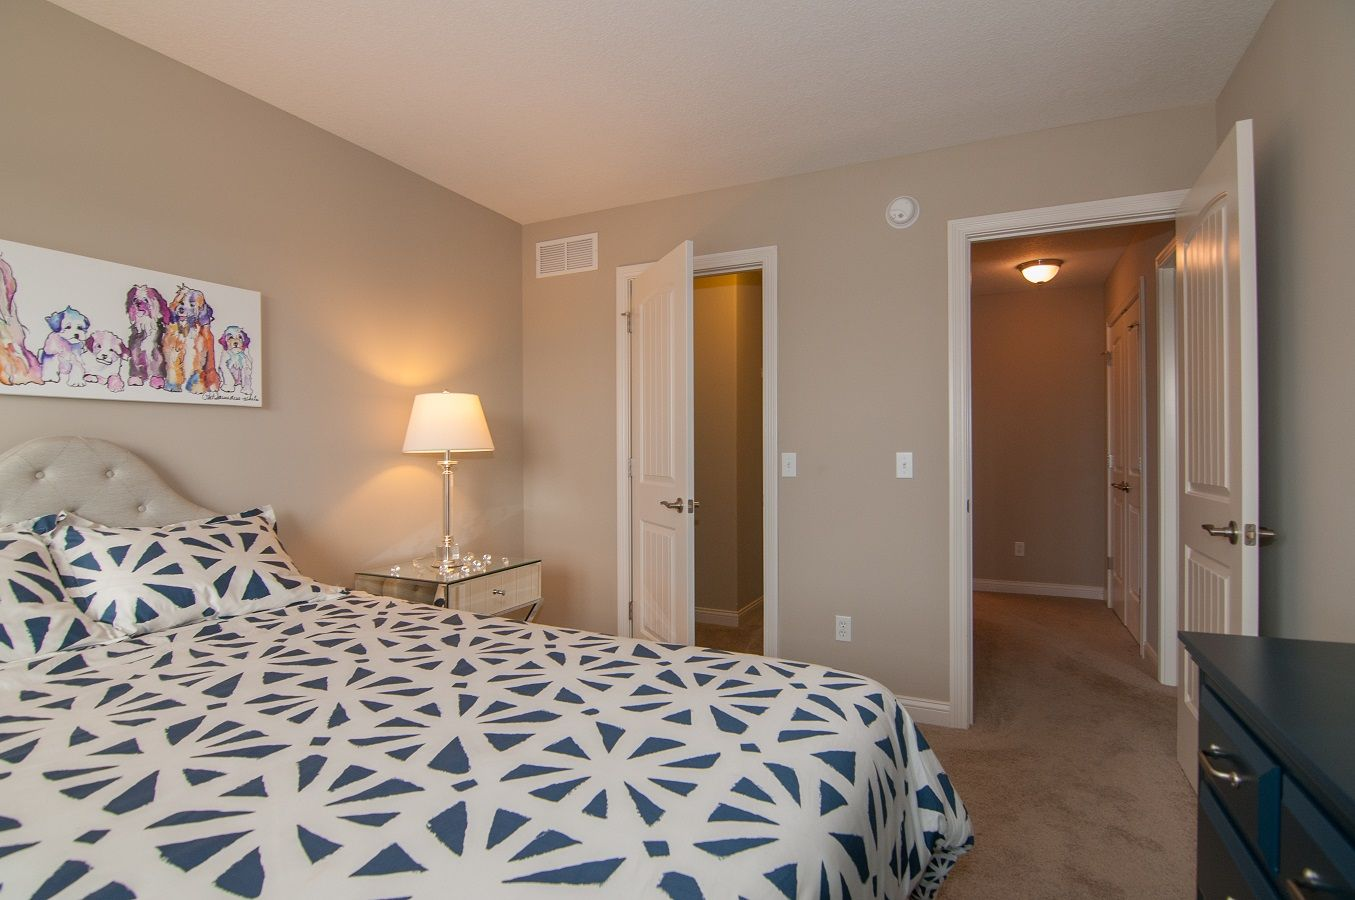 Bedroom featured in the Savannah By D.R. Horton in Fort Wayne, IN